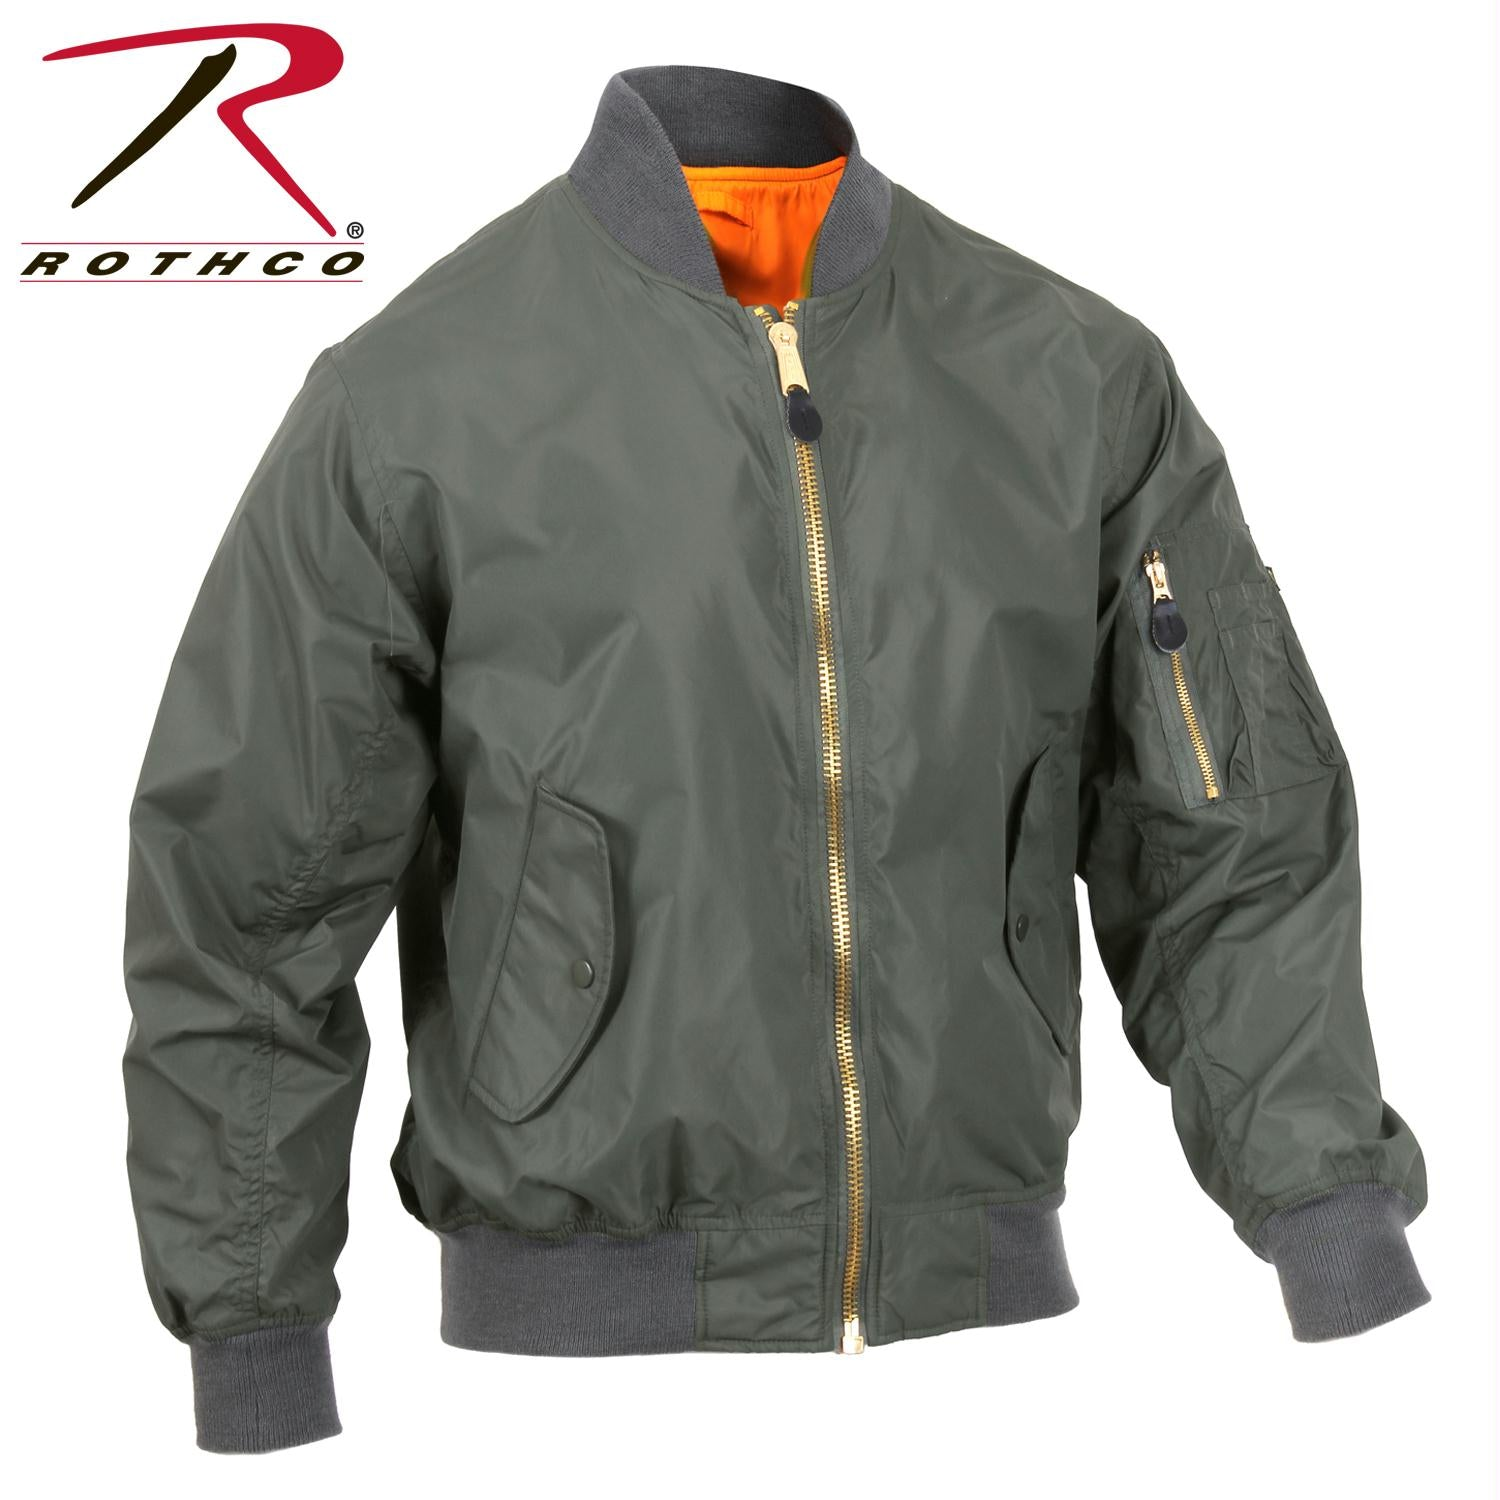 Rothco Lightweight MA-1 Flight Jacket - Sage Green / 2XL